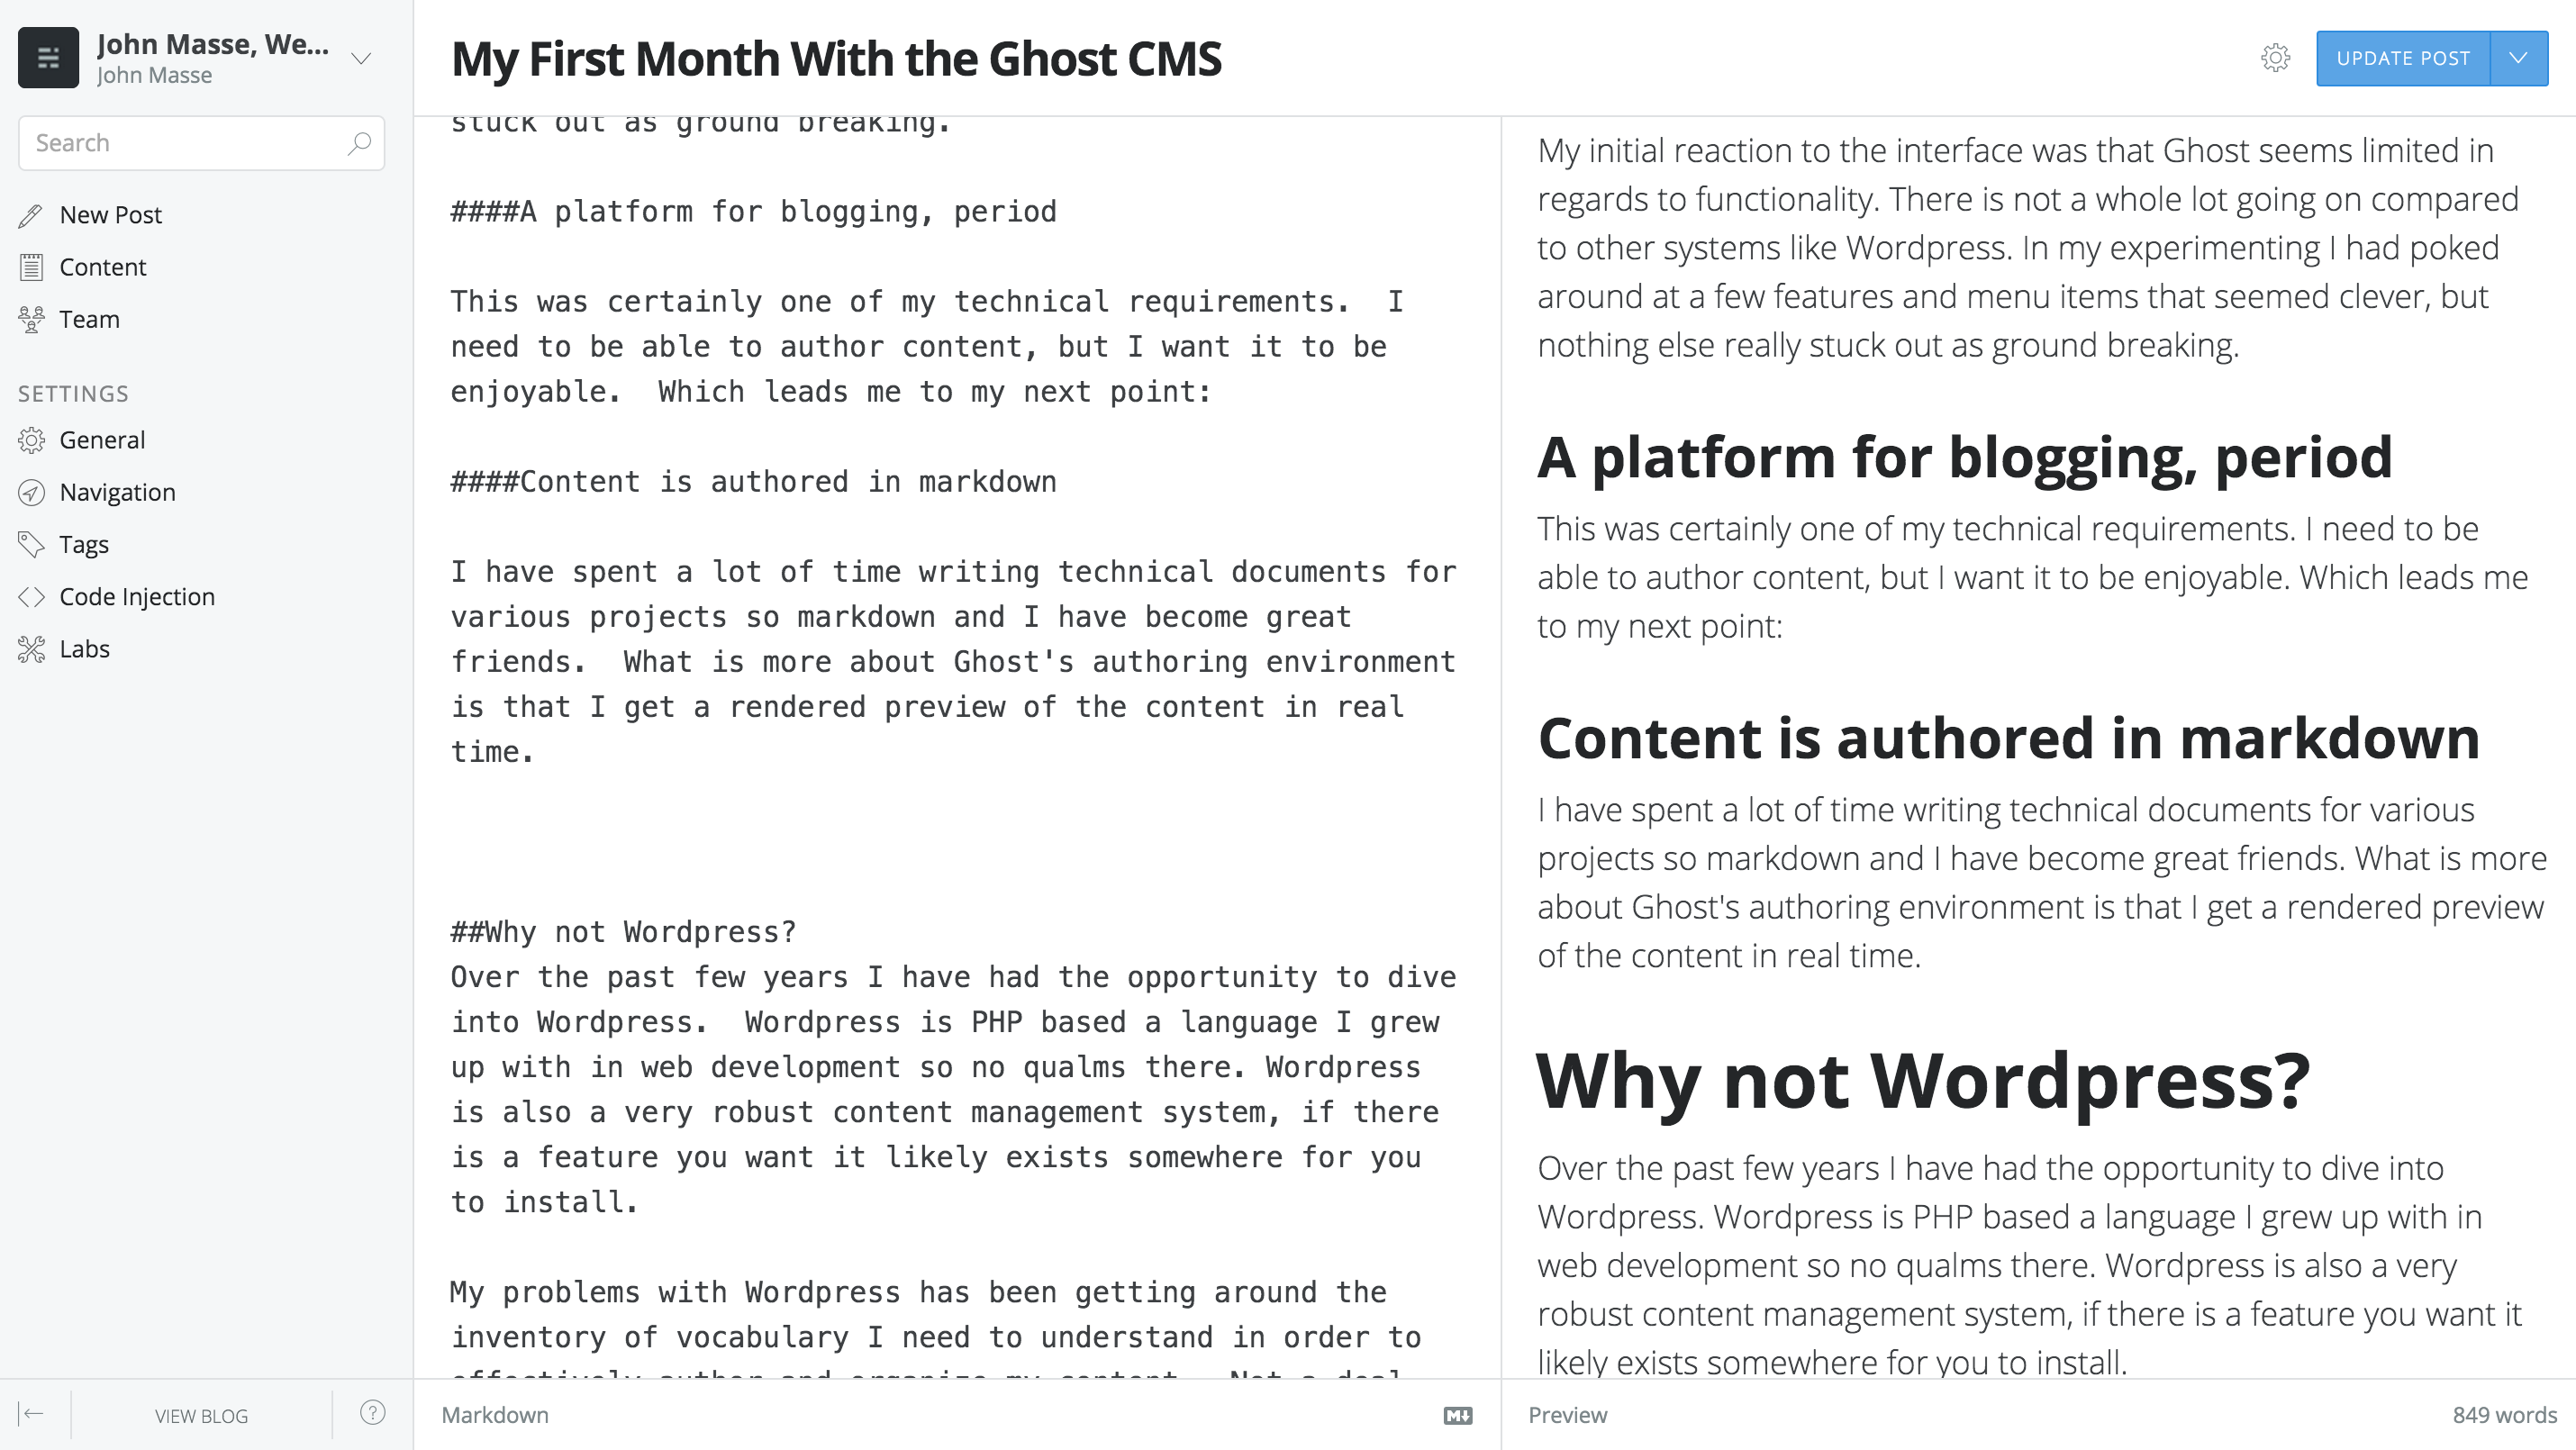 screenshot of the Ghost interface as I write My First month with Ghost